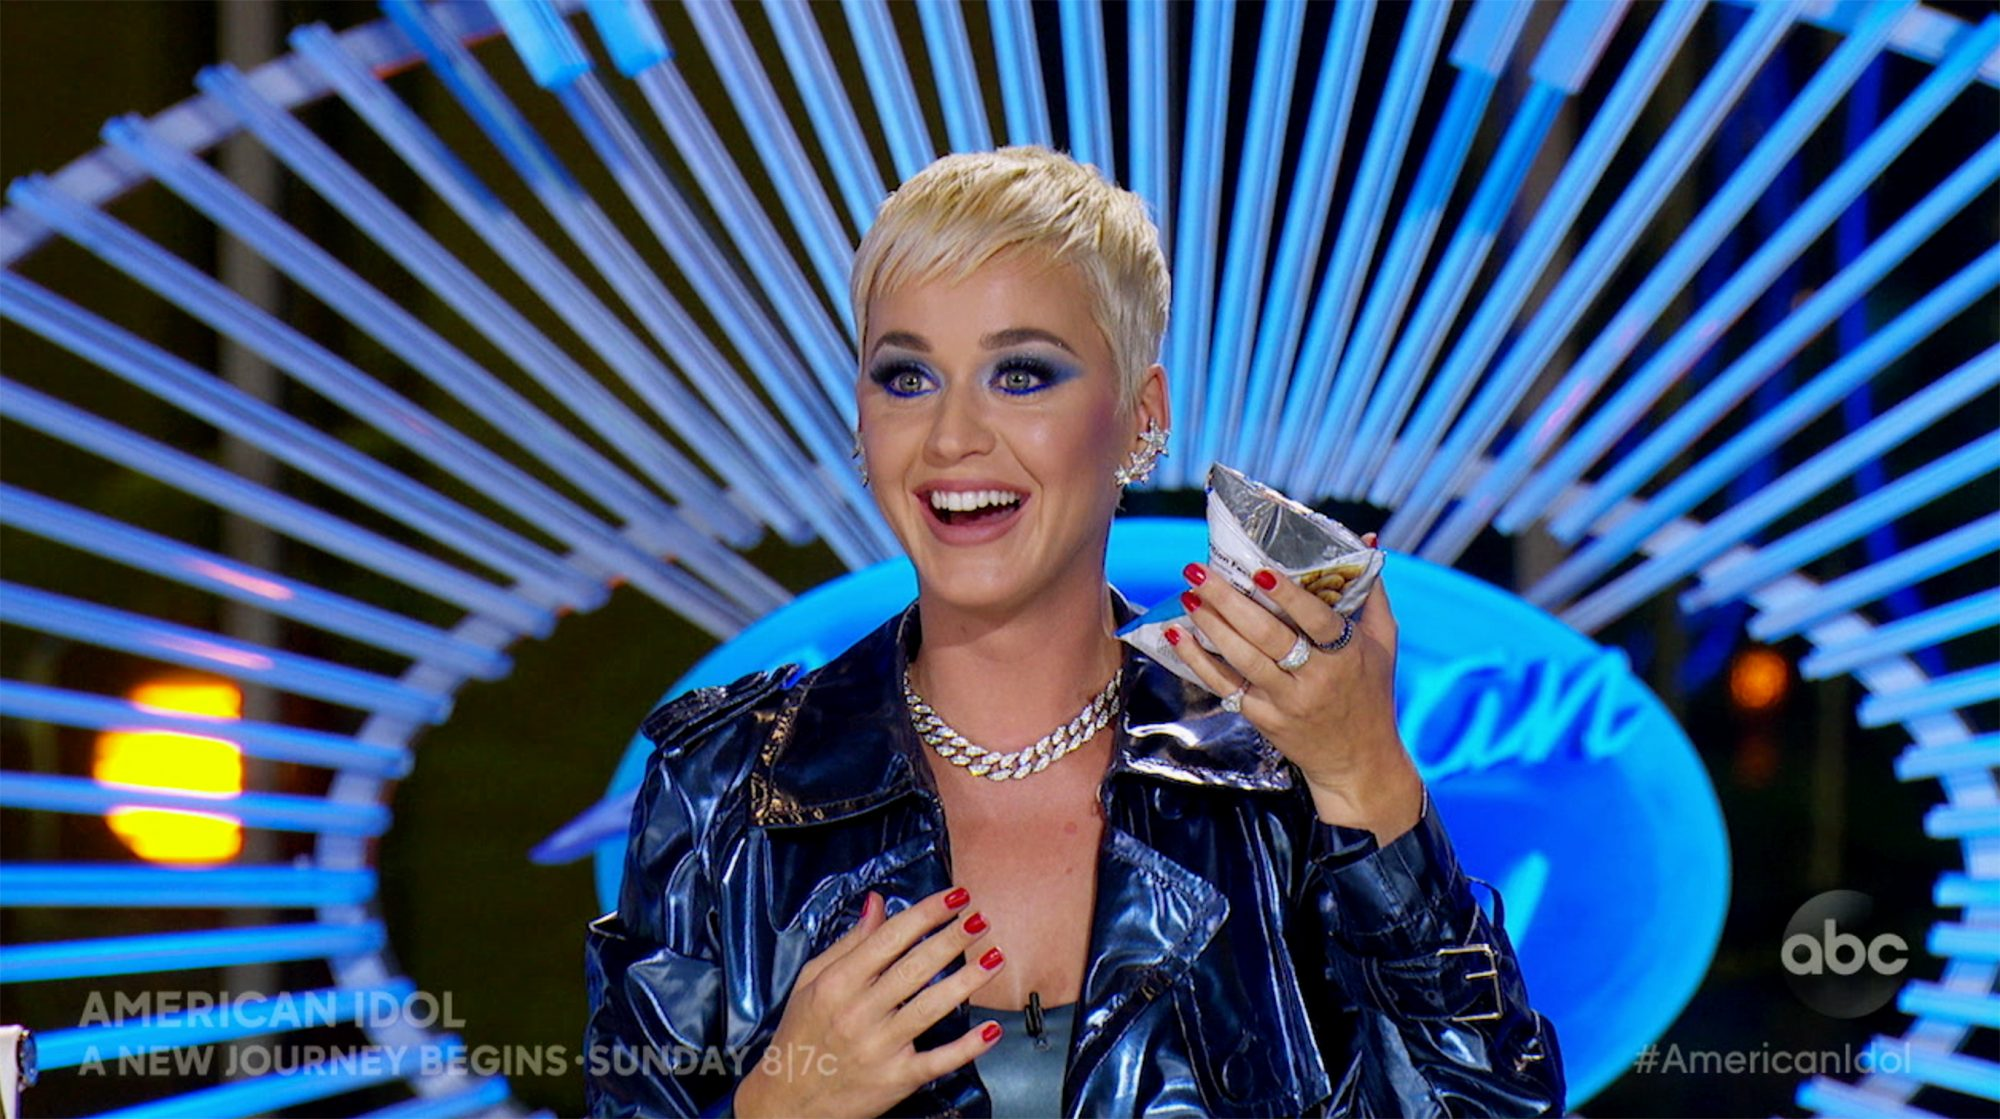 Katy Perry American IdolCredit: ABC